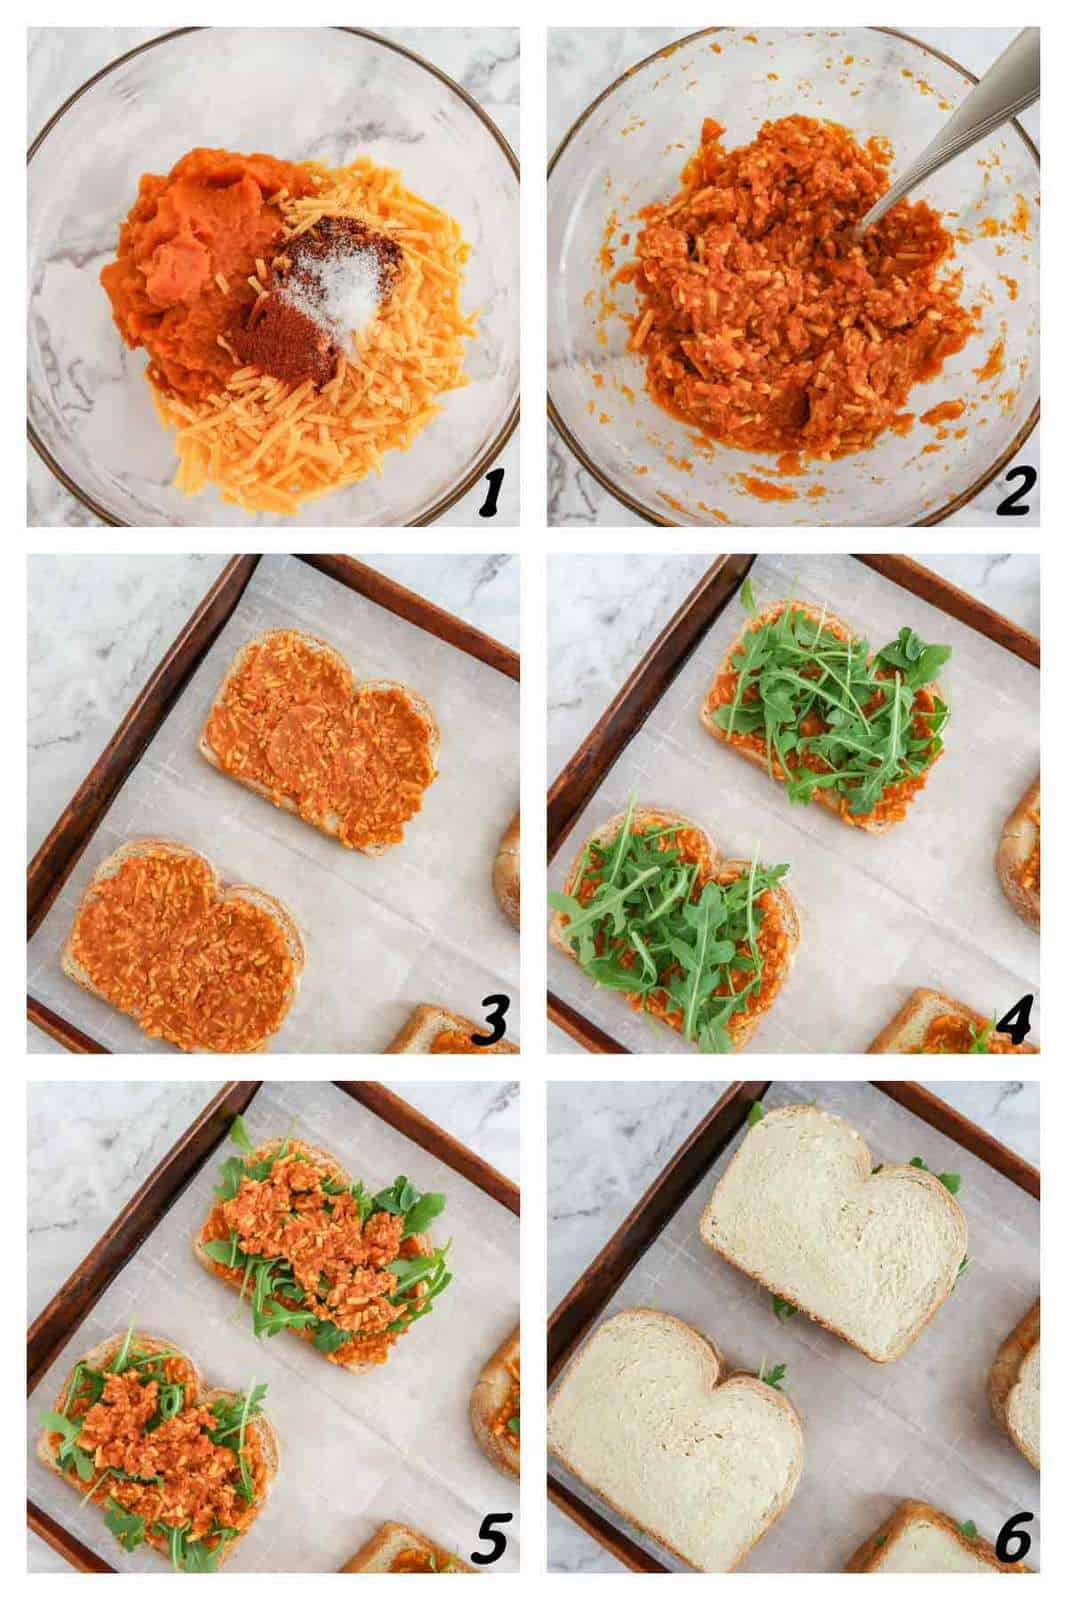 Collage of the process steps to make cheddar pumpkin grilled cheese sandwiches.